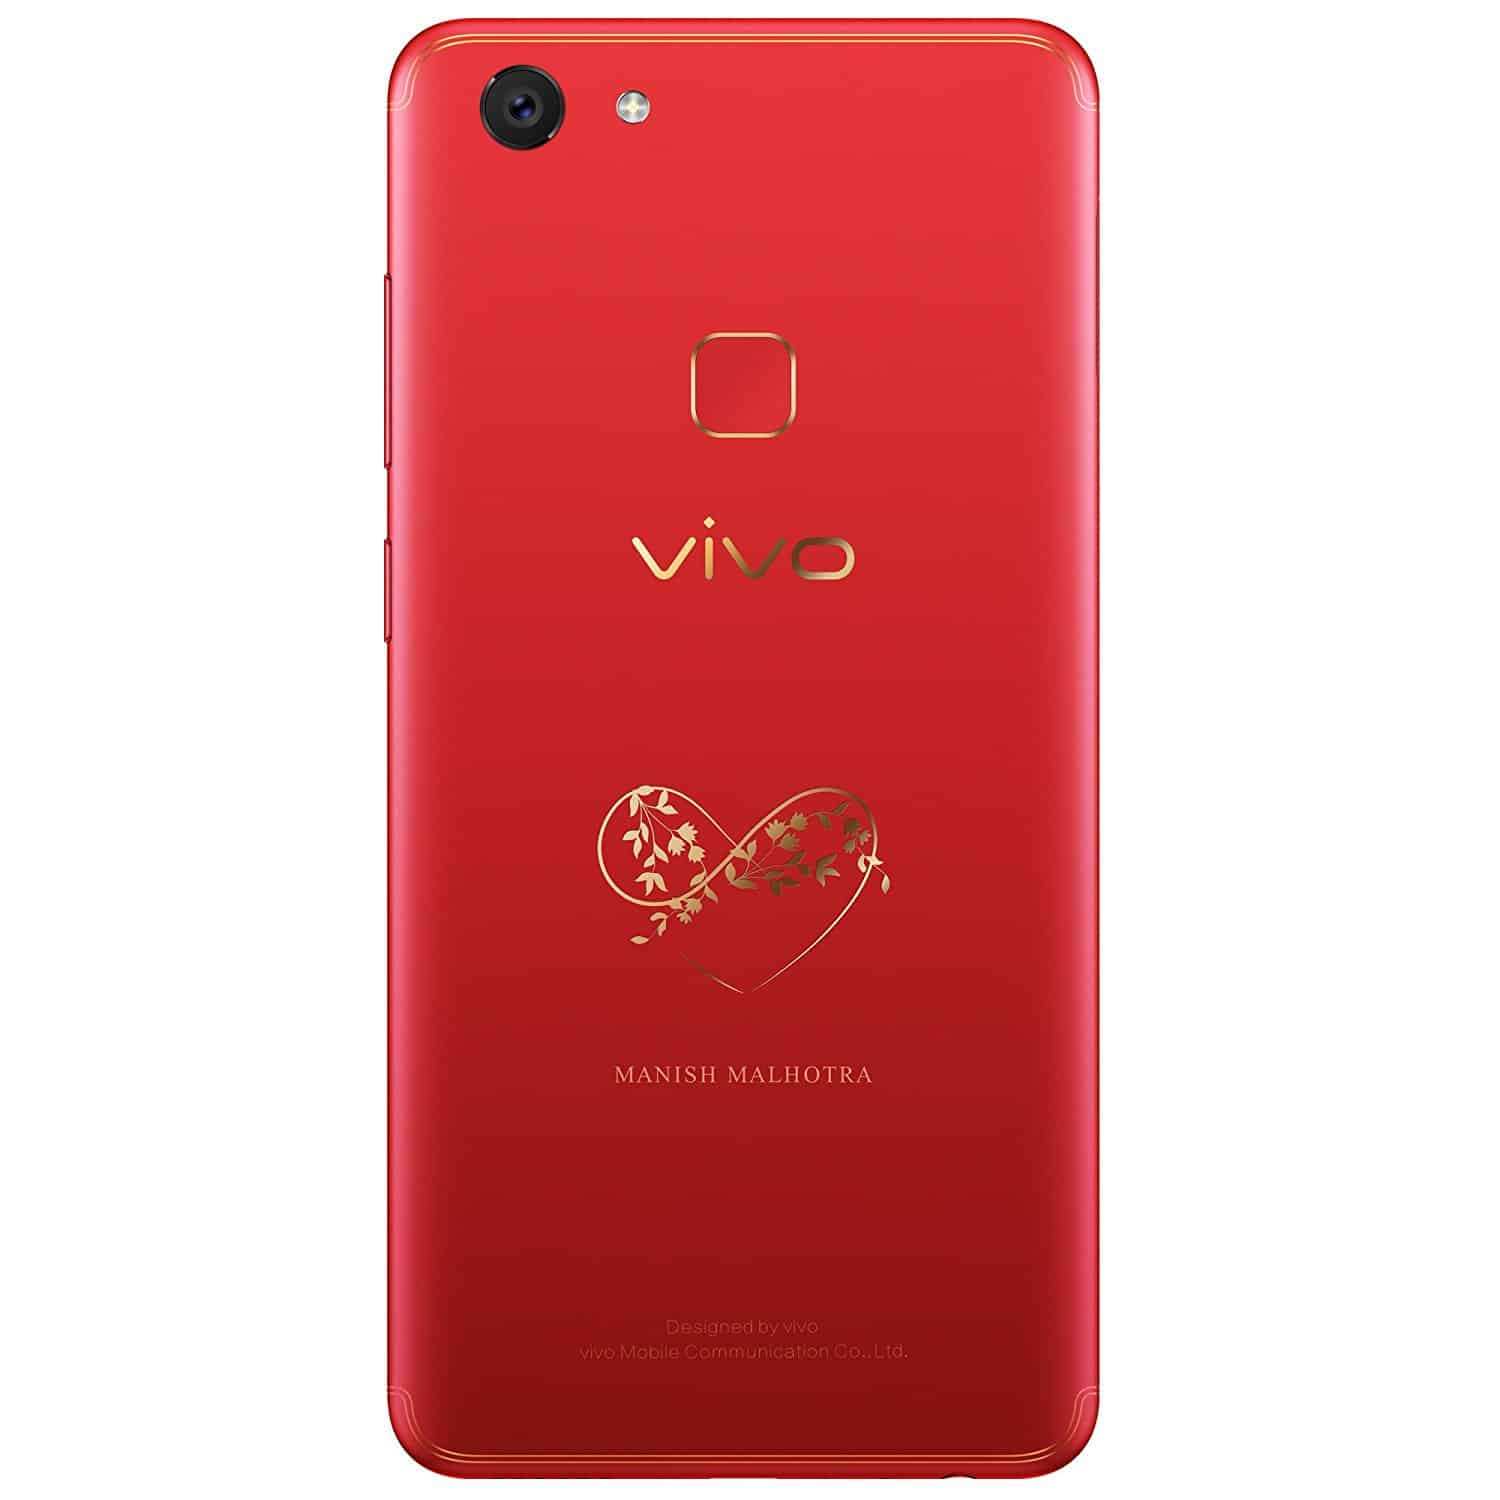 Infinite red vivo v7 plus launches in india with 4gb of ram huawei mate se factory unlocked 593 4gb64gb by huawei device usa inc stopboris Choice Image